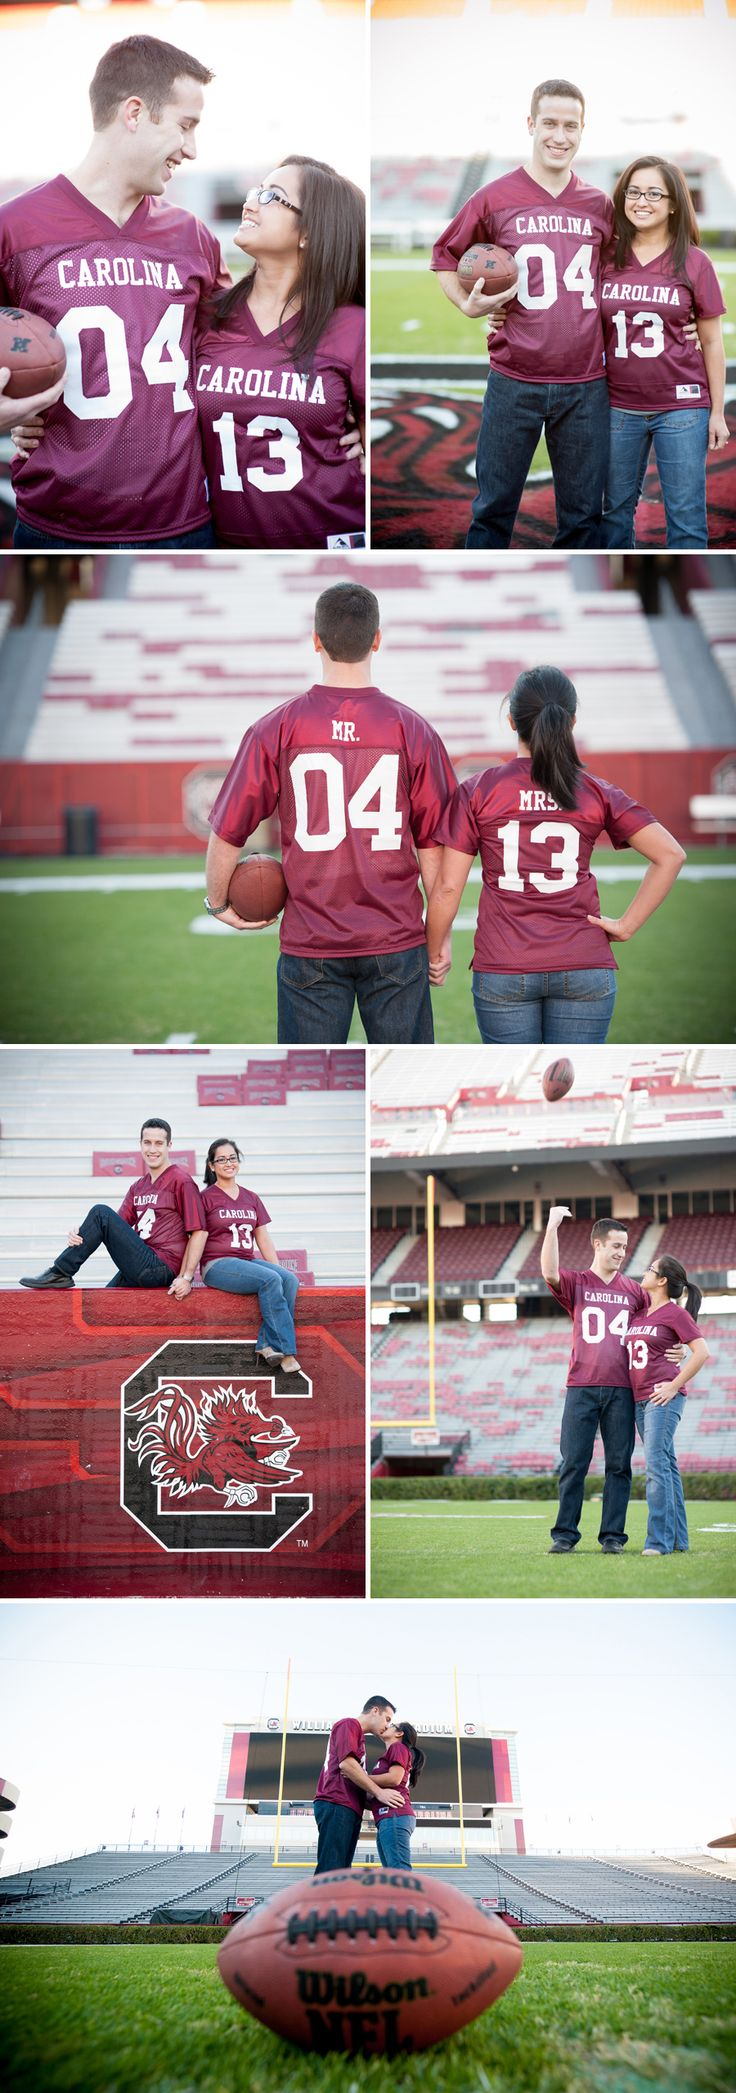 One day I hope to get engaged and Williams Brice is a great location to take engagement pictures.